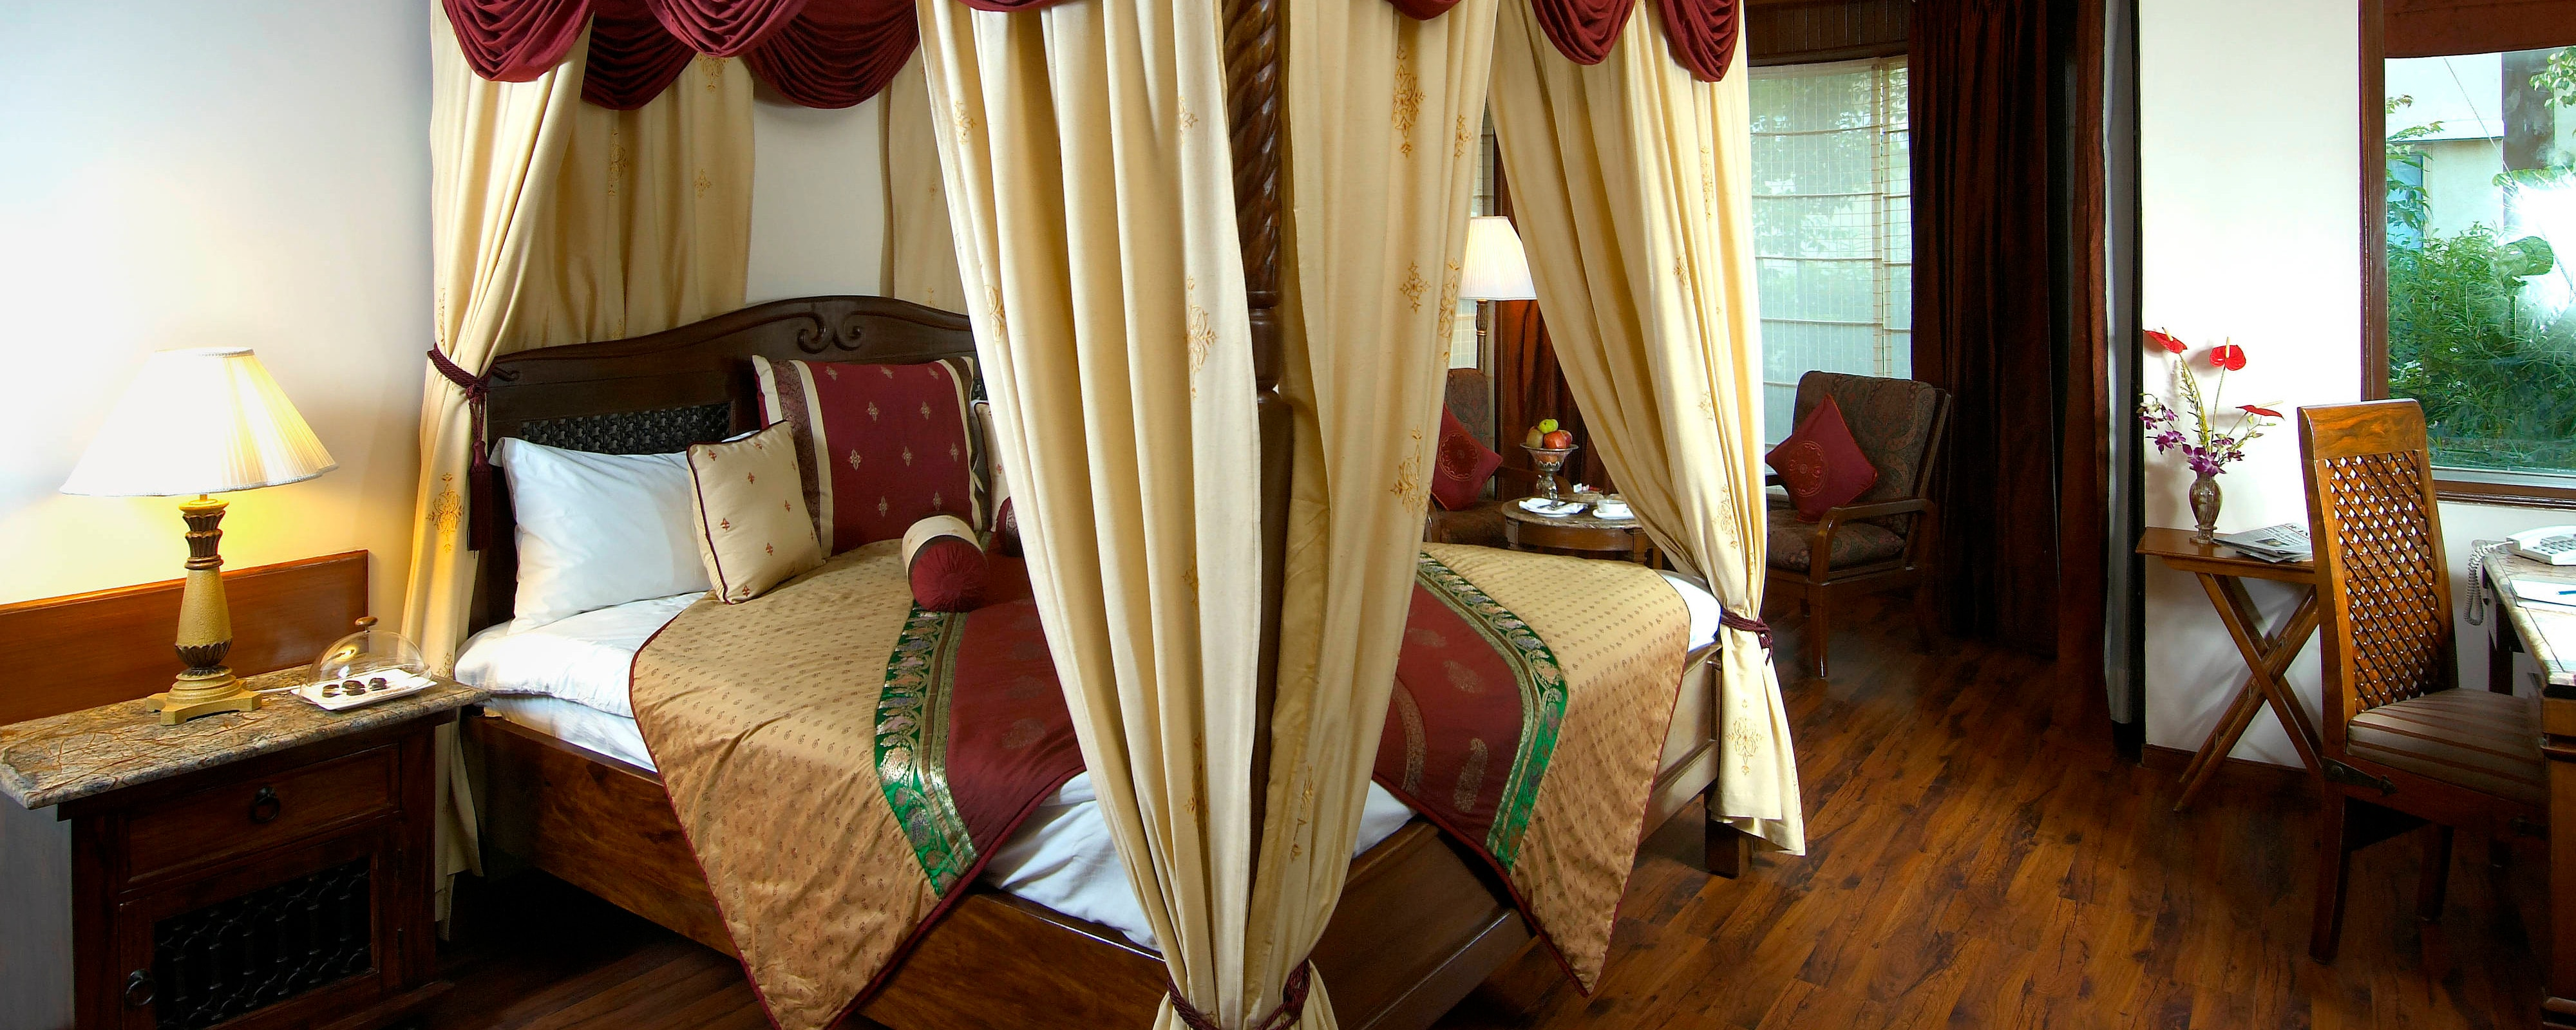 Private Villa with Four Poster Bed